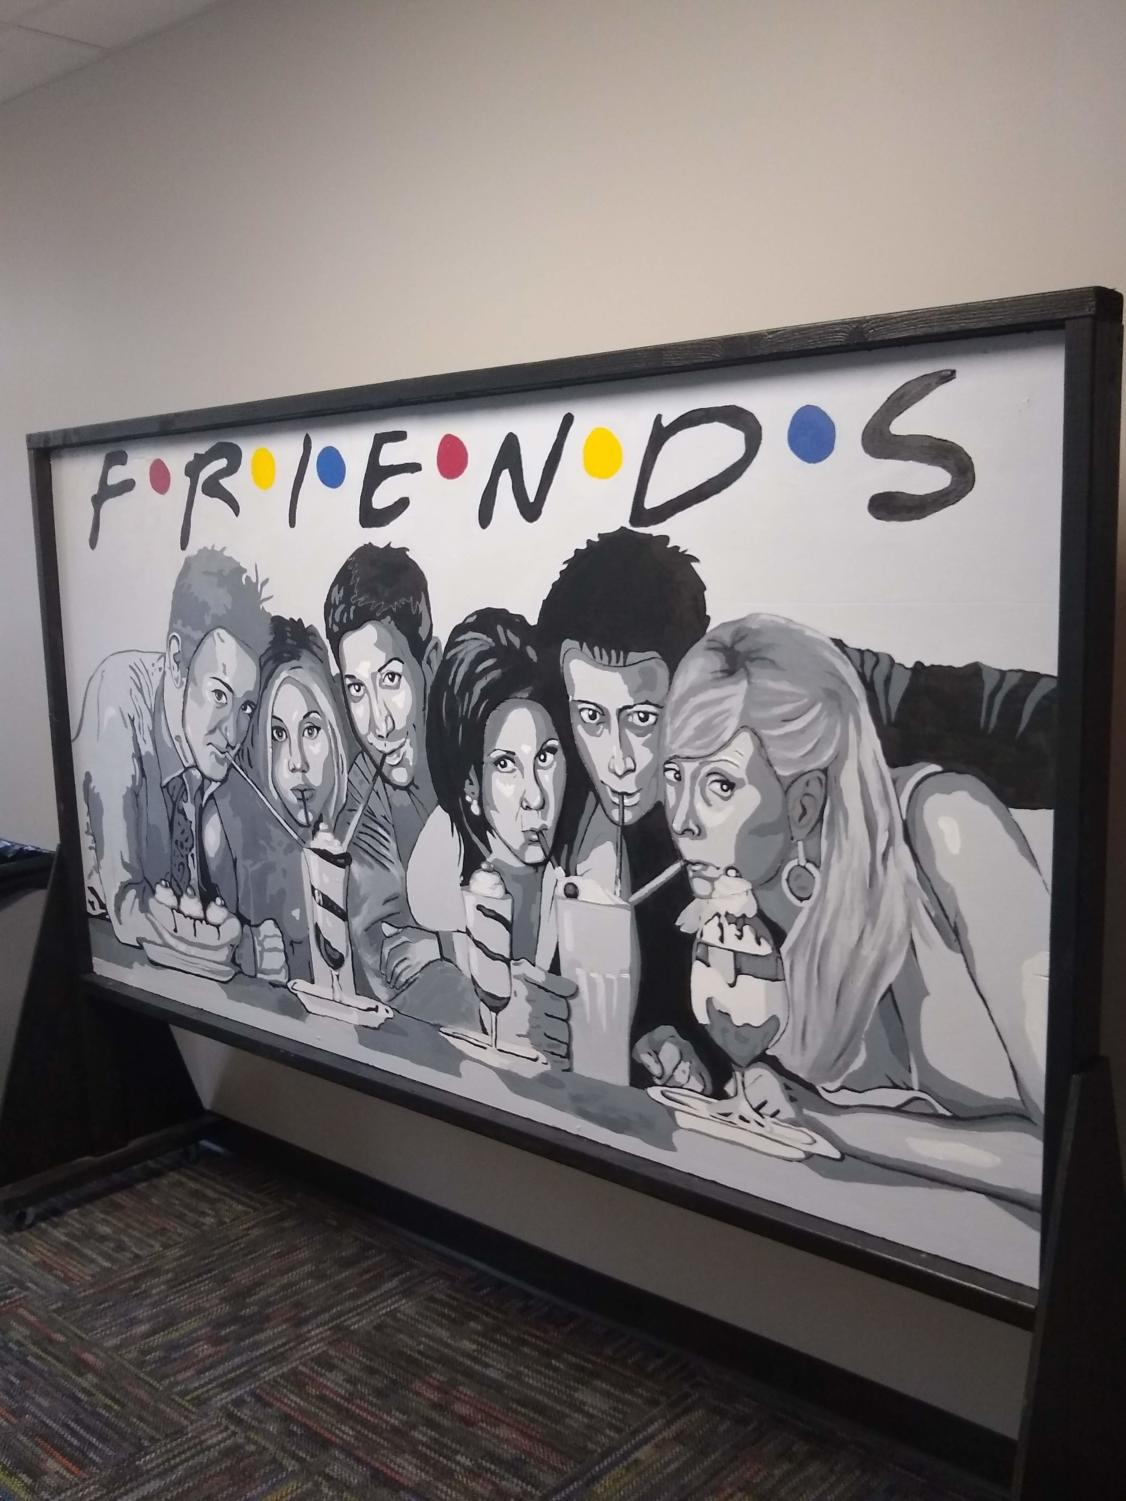 The Friends cutout poster, now filled in with faces, greets all who come into the library.